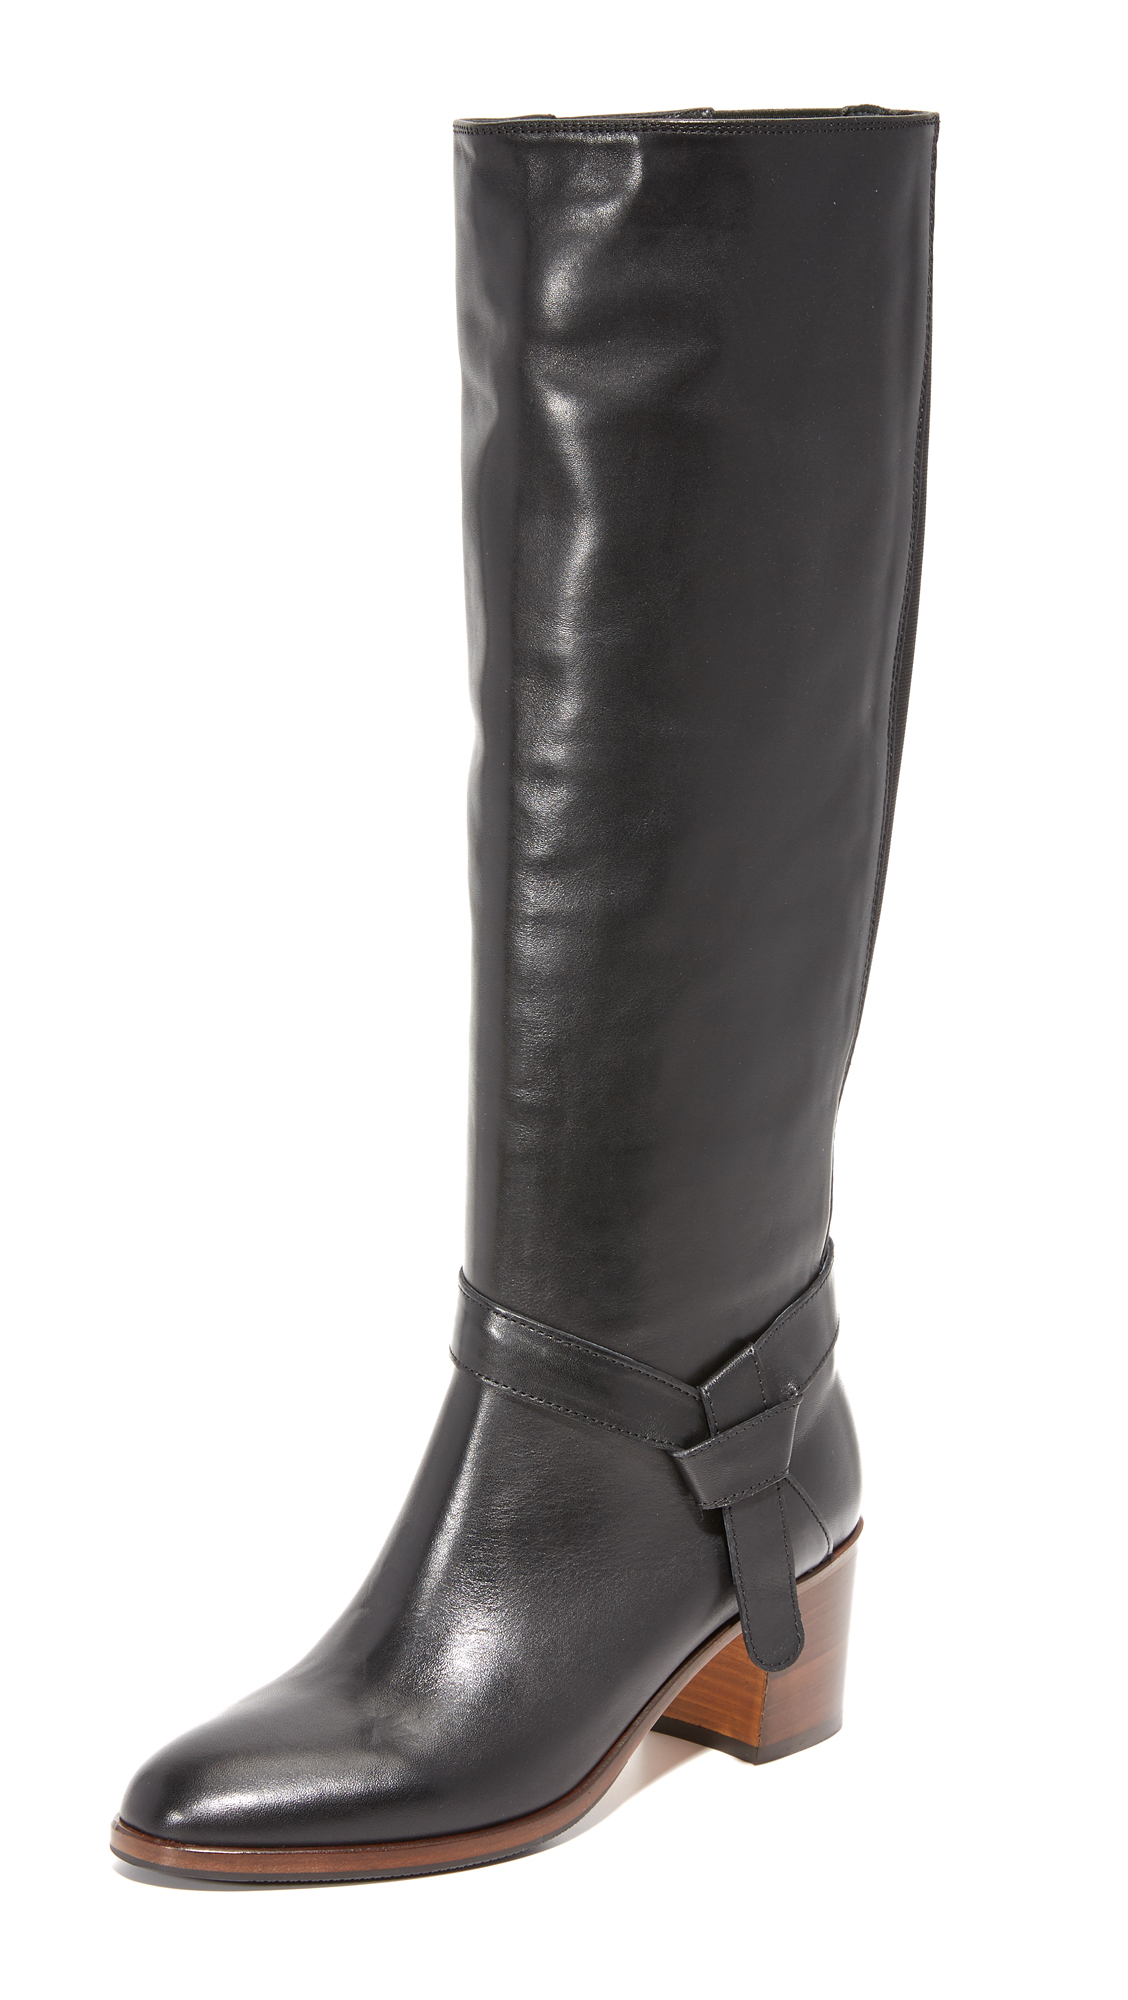 lyst kate spade new york mabelle tall boots in black. Black Bedroom Furniture Sets. Home Design Ideas